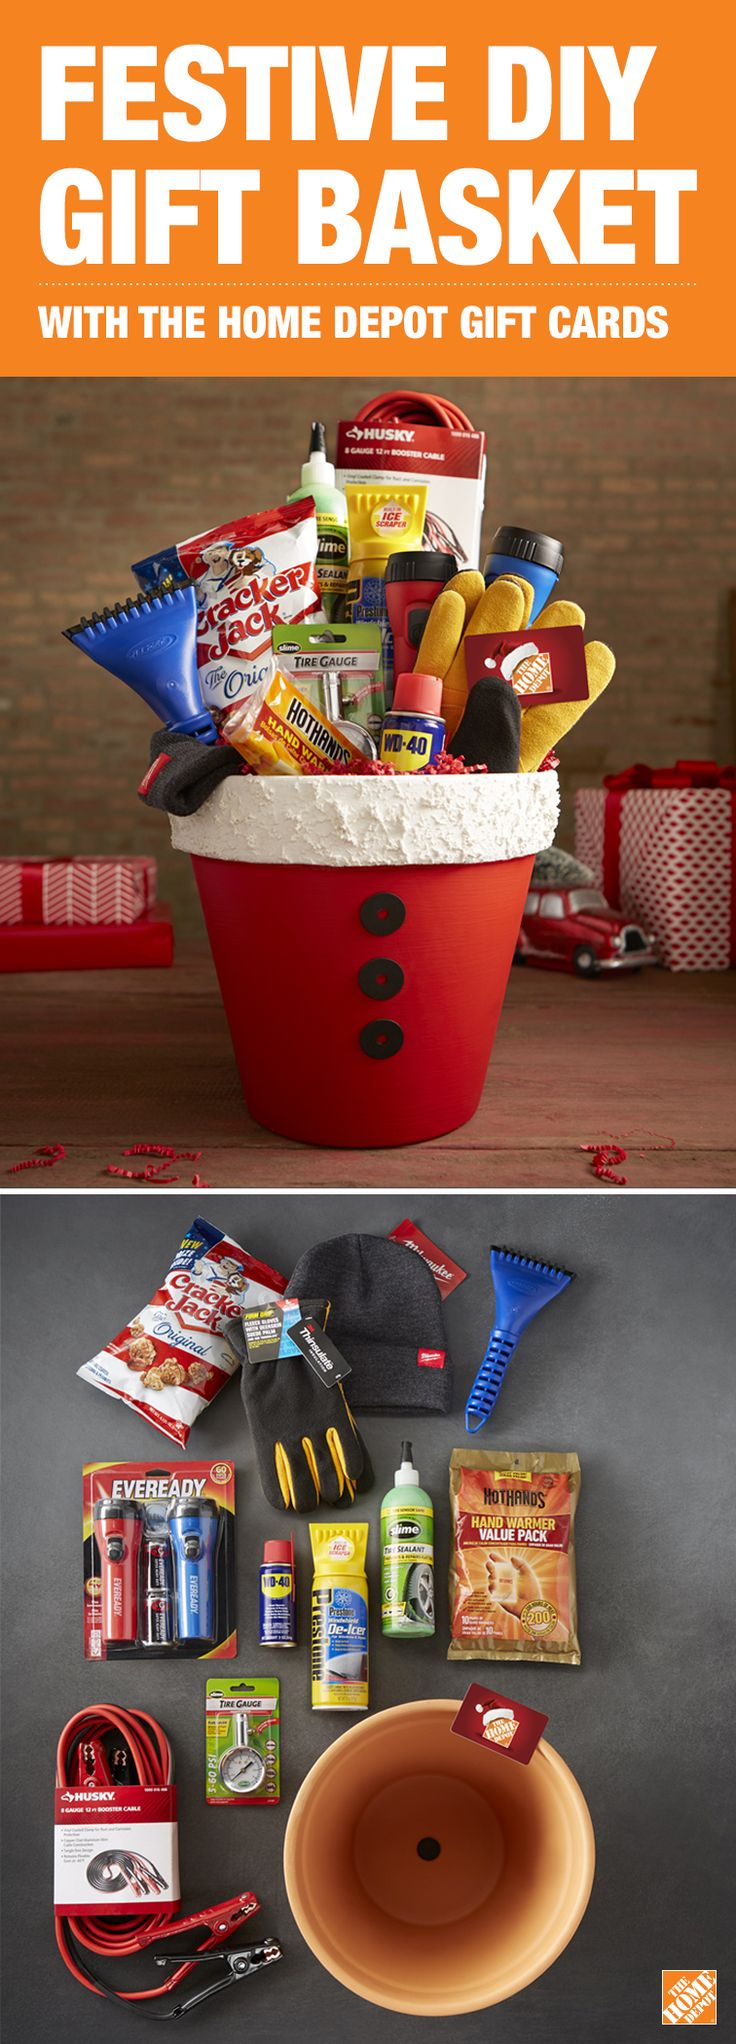 The Home Depot gift card in Santa's Winter Survival Kit will make weathering any winter storm easier. Click through to purchase your gift card now!  • Prime and paint a 12-in. terra cotta clay pot. • Paint three 1 1/4  in. stainless steel washers black. • Spray the rim of the pot with popcorn ceiling texture. • Hot glue the washers to the front of the pot in a vertical row. • Fill the pot with winter survival items from The Home Depot. • Don't forget the most important part: the gift card!